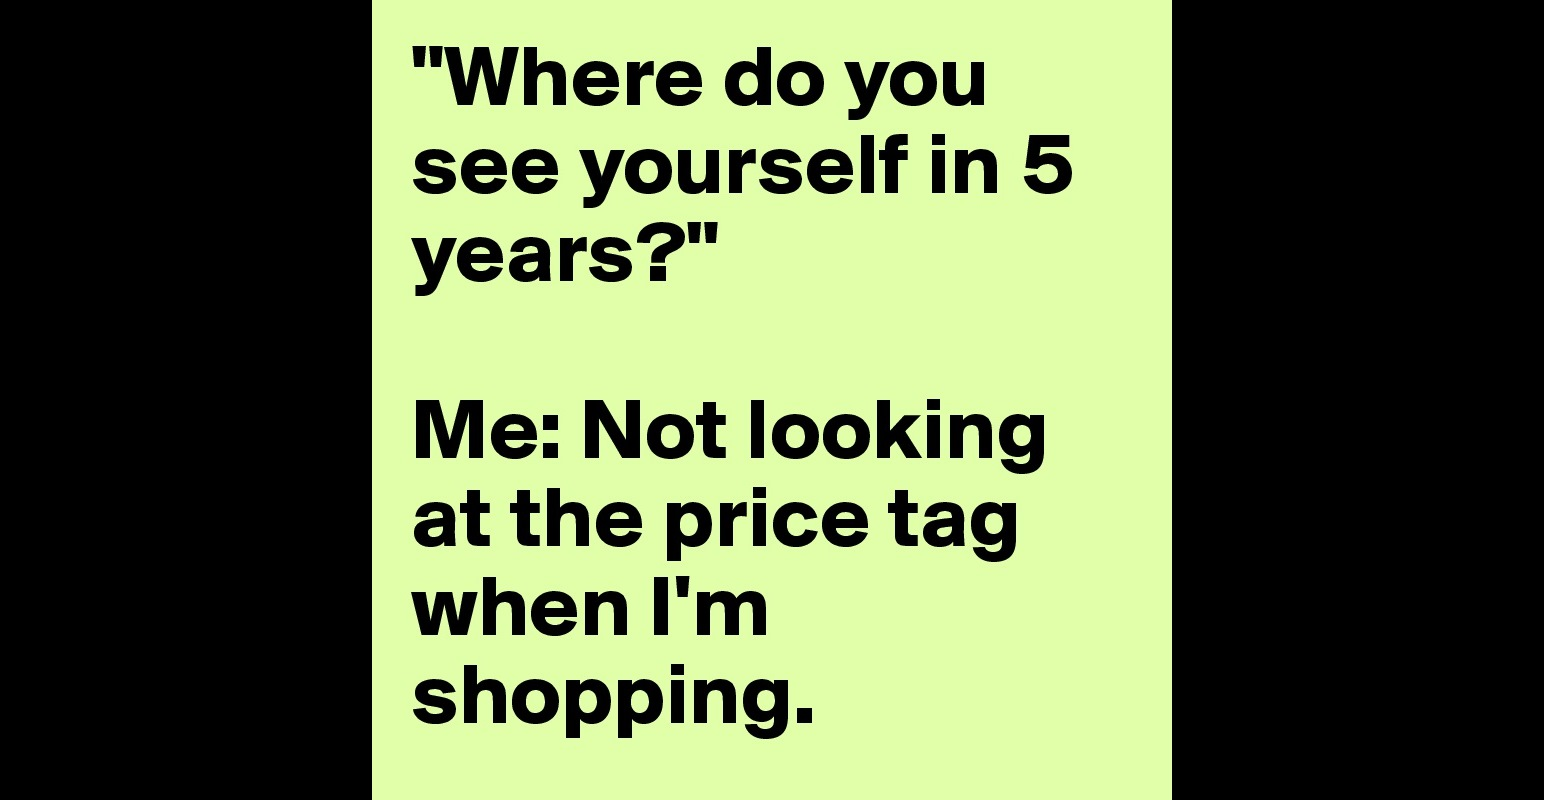 where do you see yourself in years me not looking at the where do you see yourself in 5 years me not looking at the price tag when i m shopping post by meddxxo on boldomatic